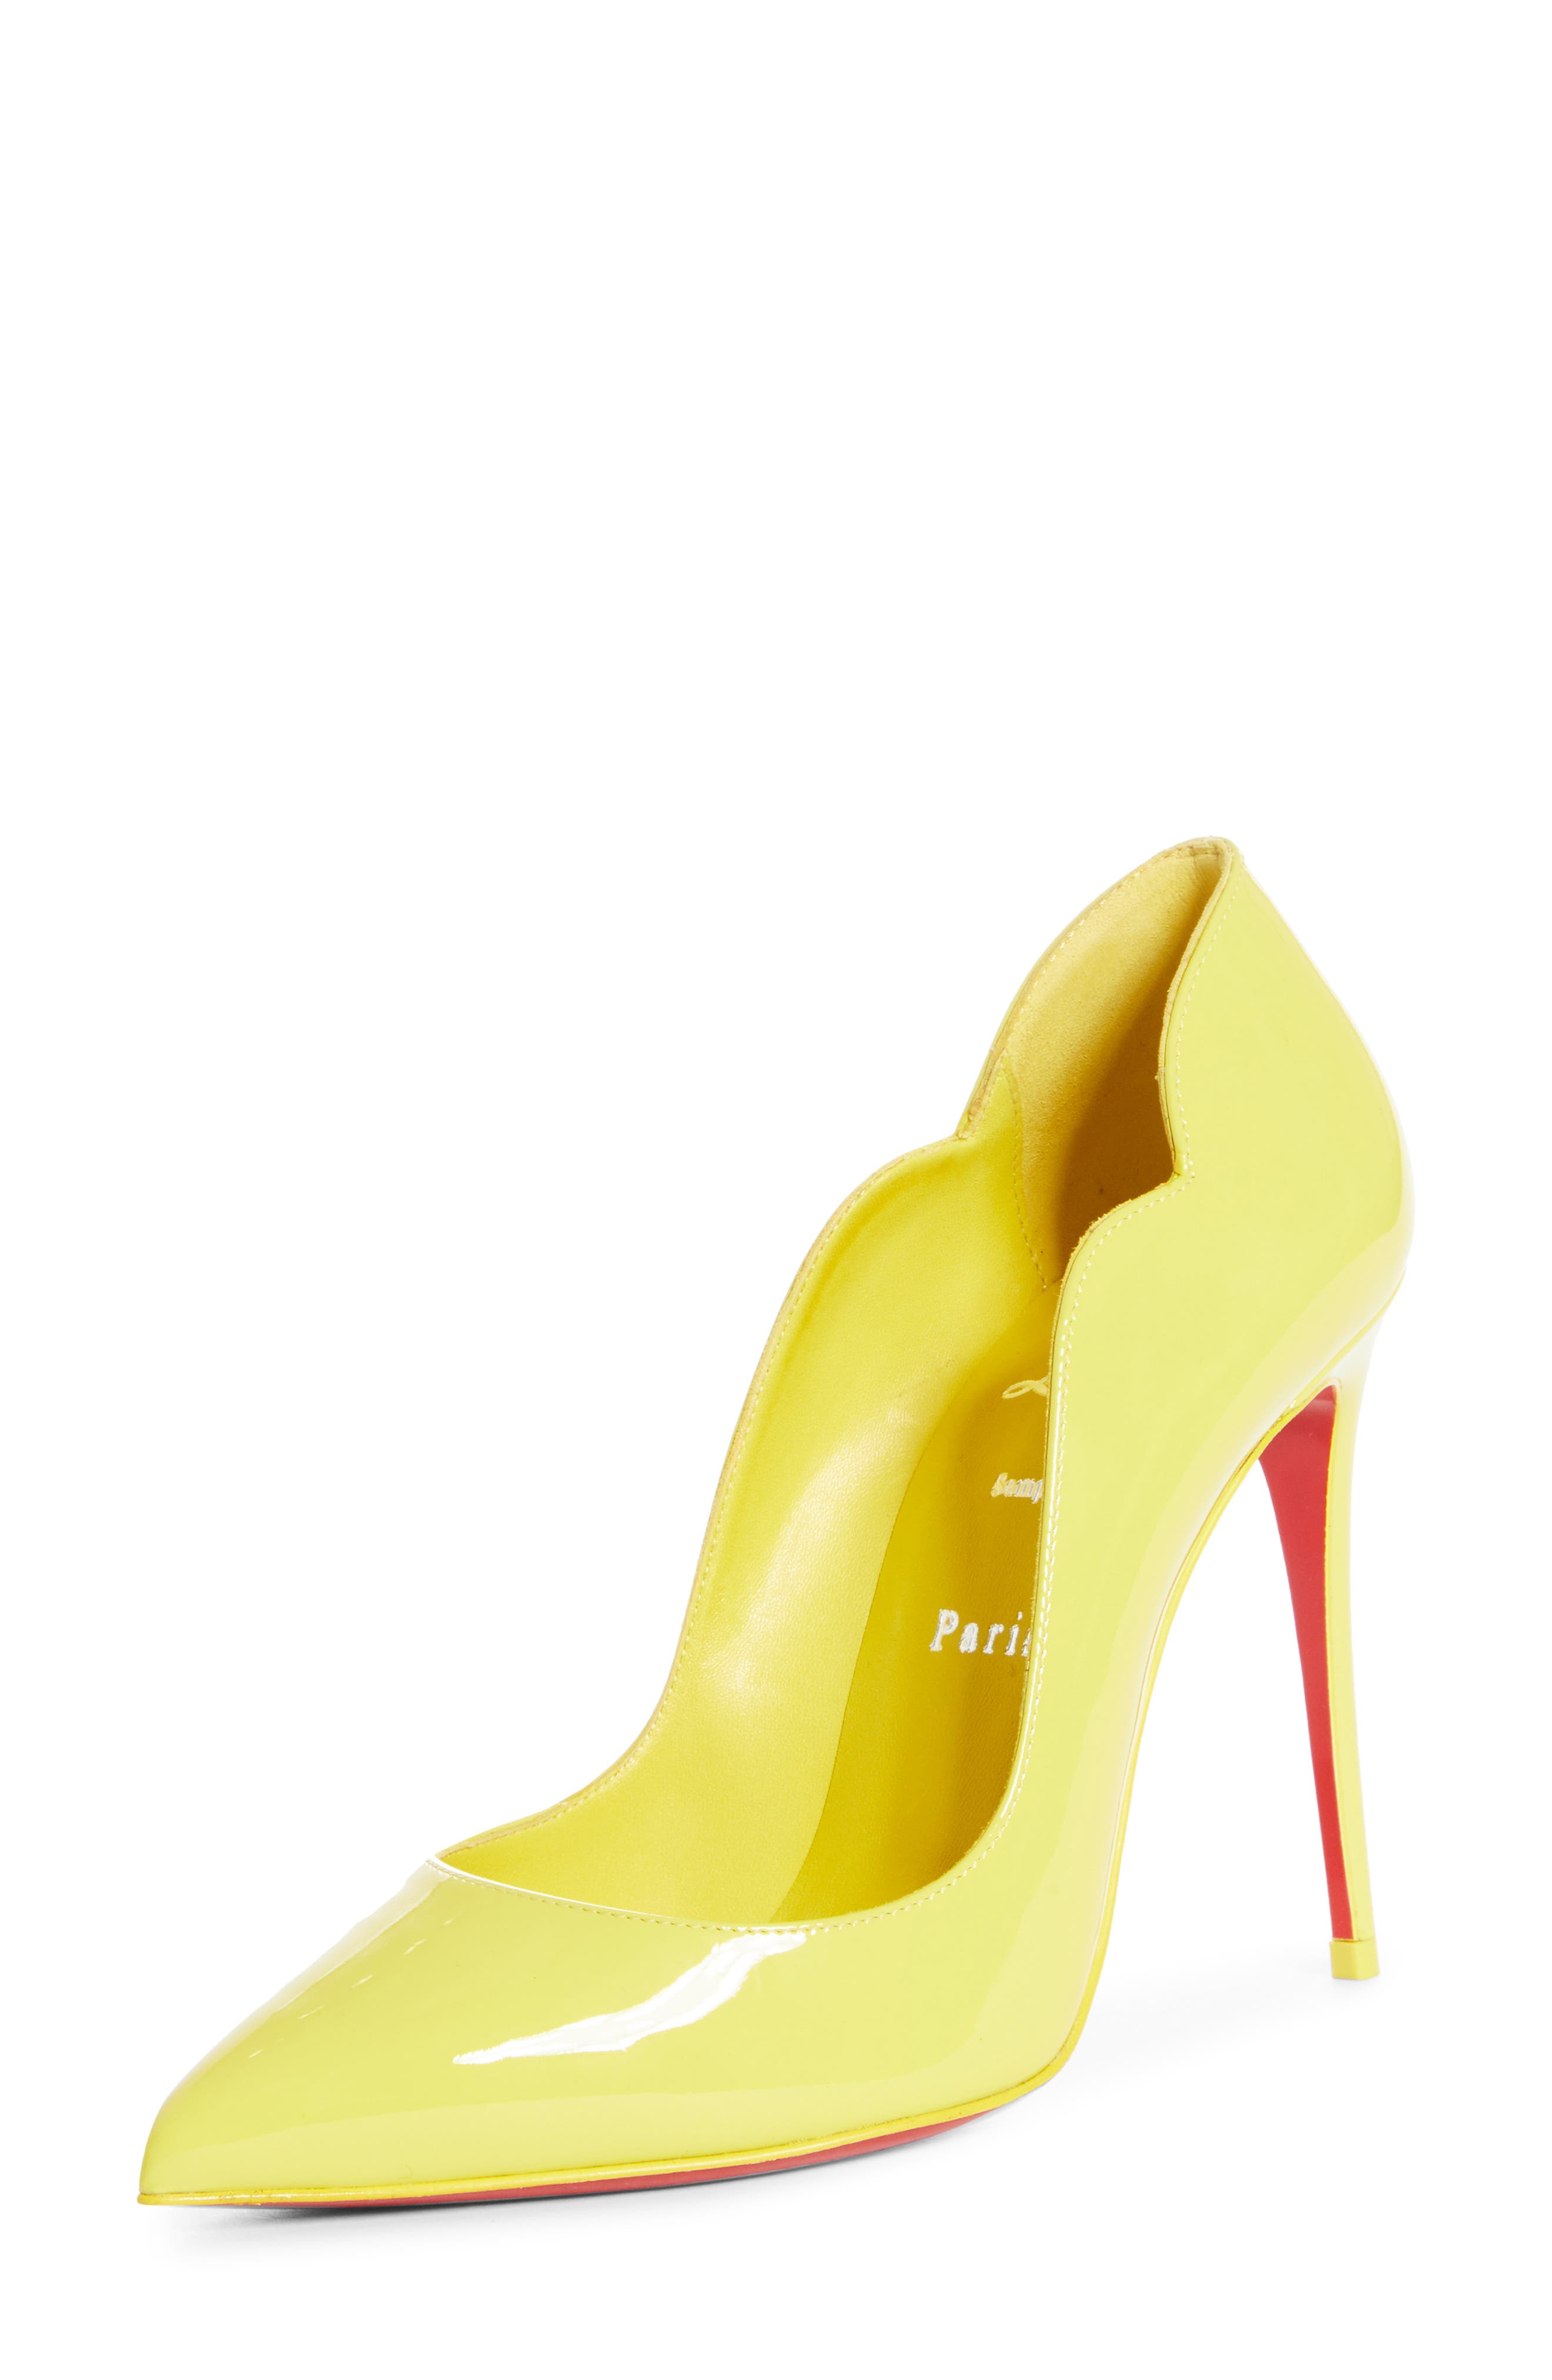 A curvy, scalloped counter and willowy stiletto heel dial up the drama on a pointy-toe pump finished with an iconic Louboutin red sole. Style Name: Christian Louboutin Hot Chick Scallop Pointed Toe Pump (Women). Style Number: 6006309. Available in stores.